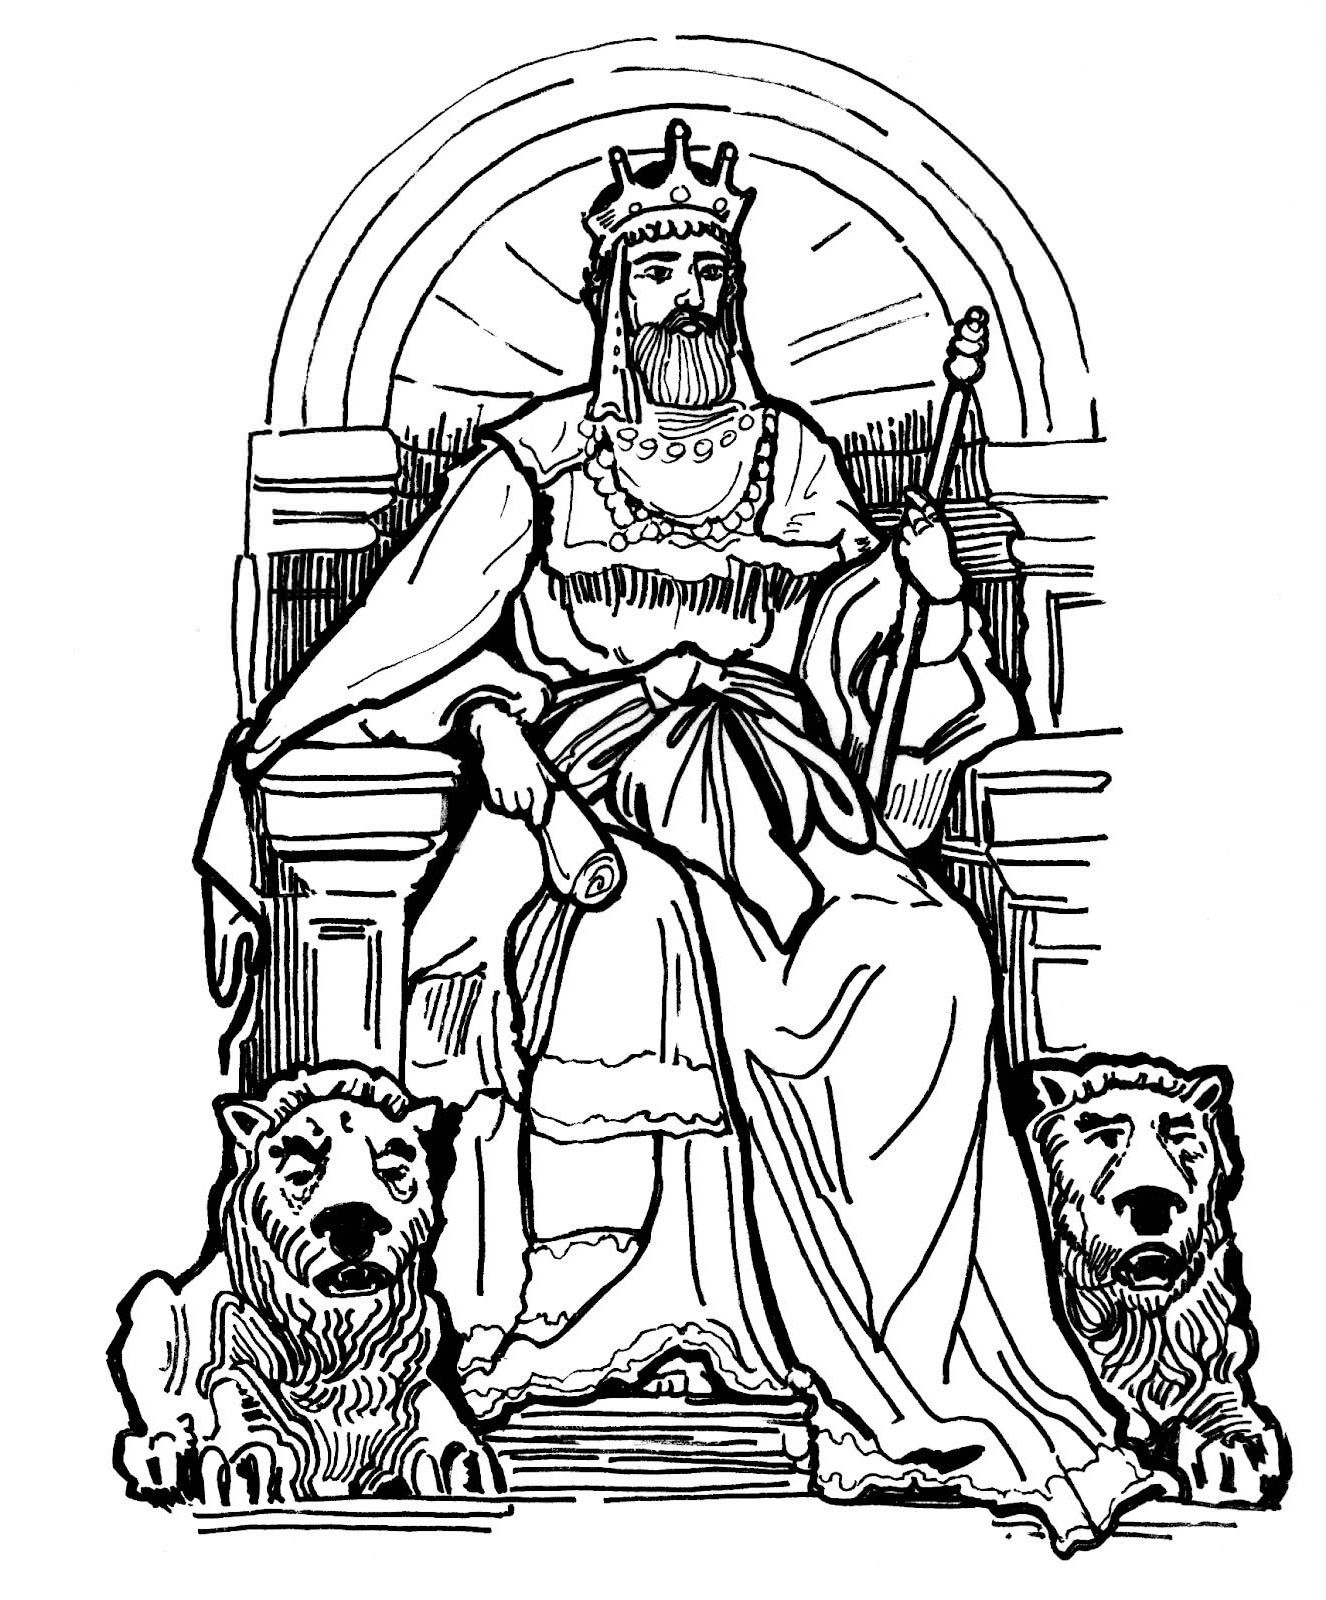 king on throne drawing - Google Search | Chaos | Pinterest